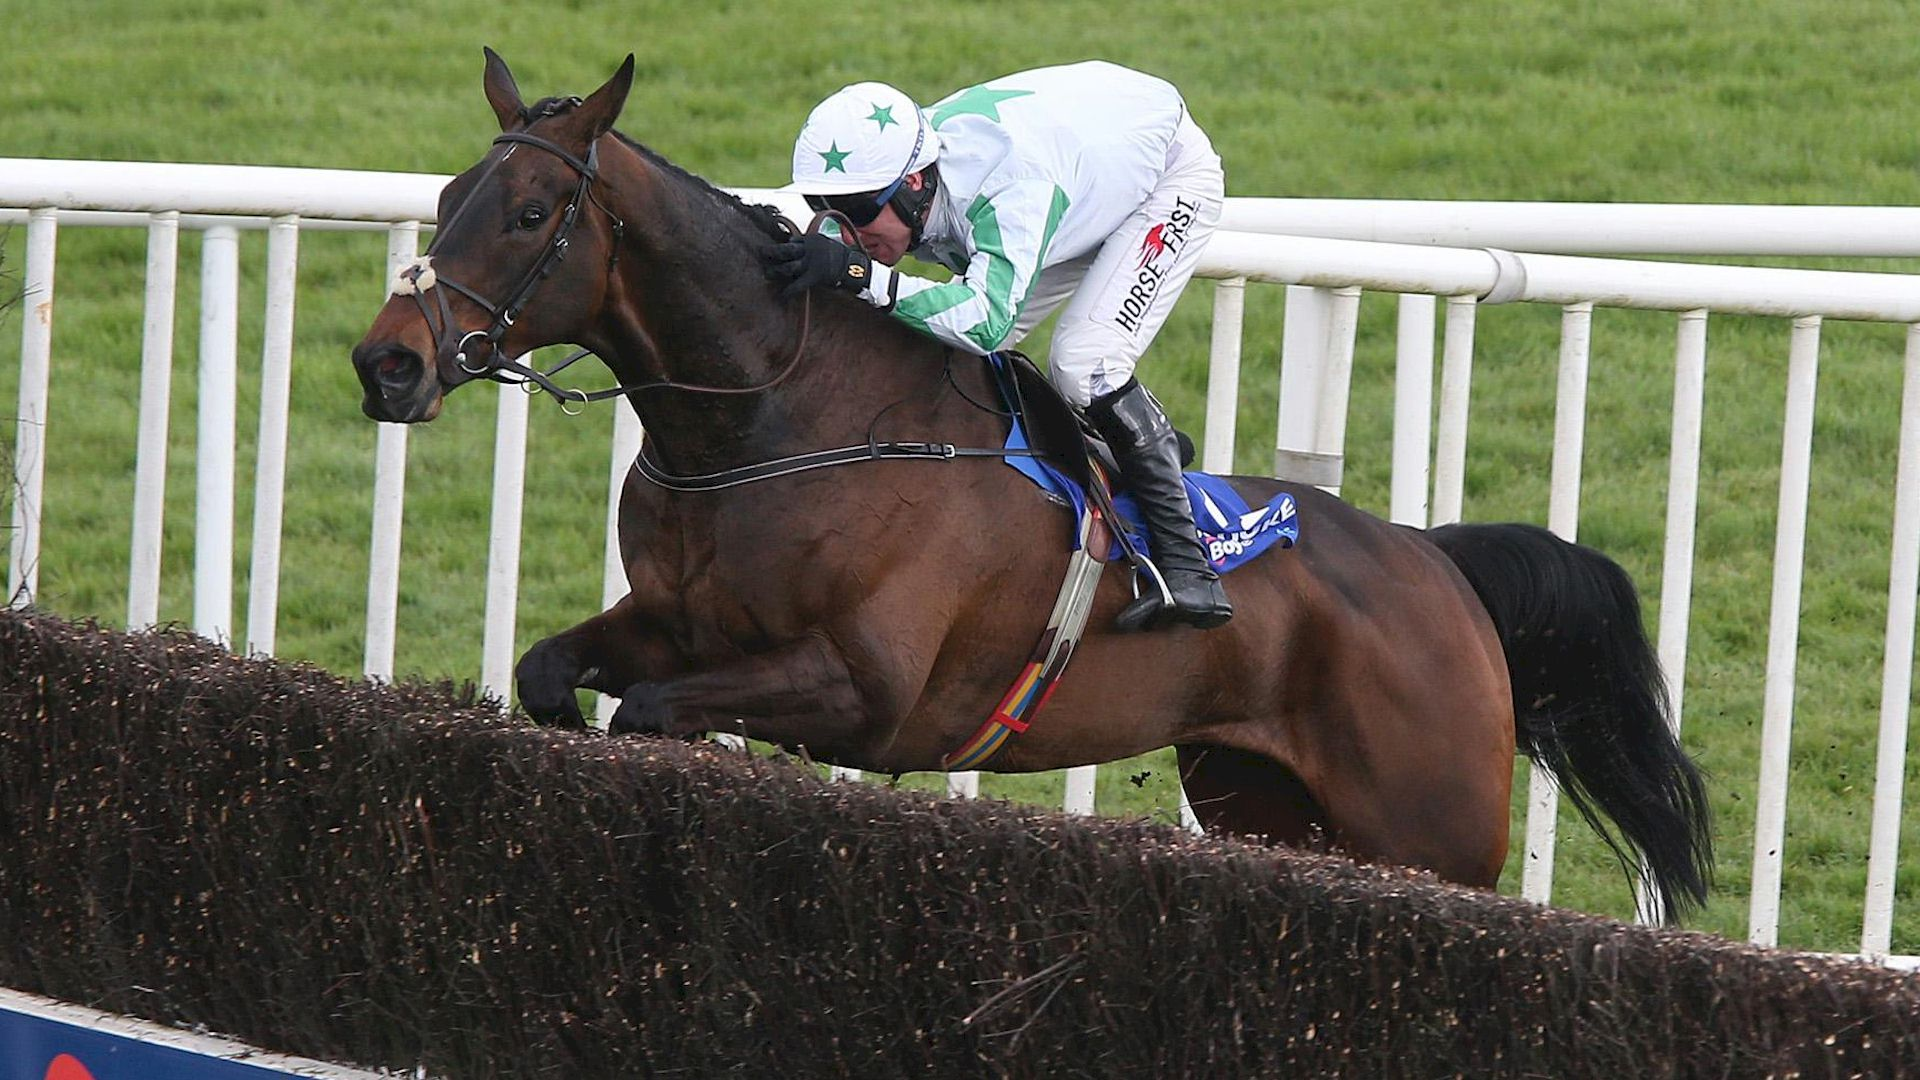 Fairyhouse Easter Racing Festival 2021 with Race & Stay